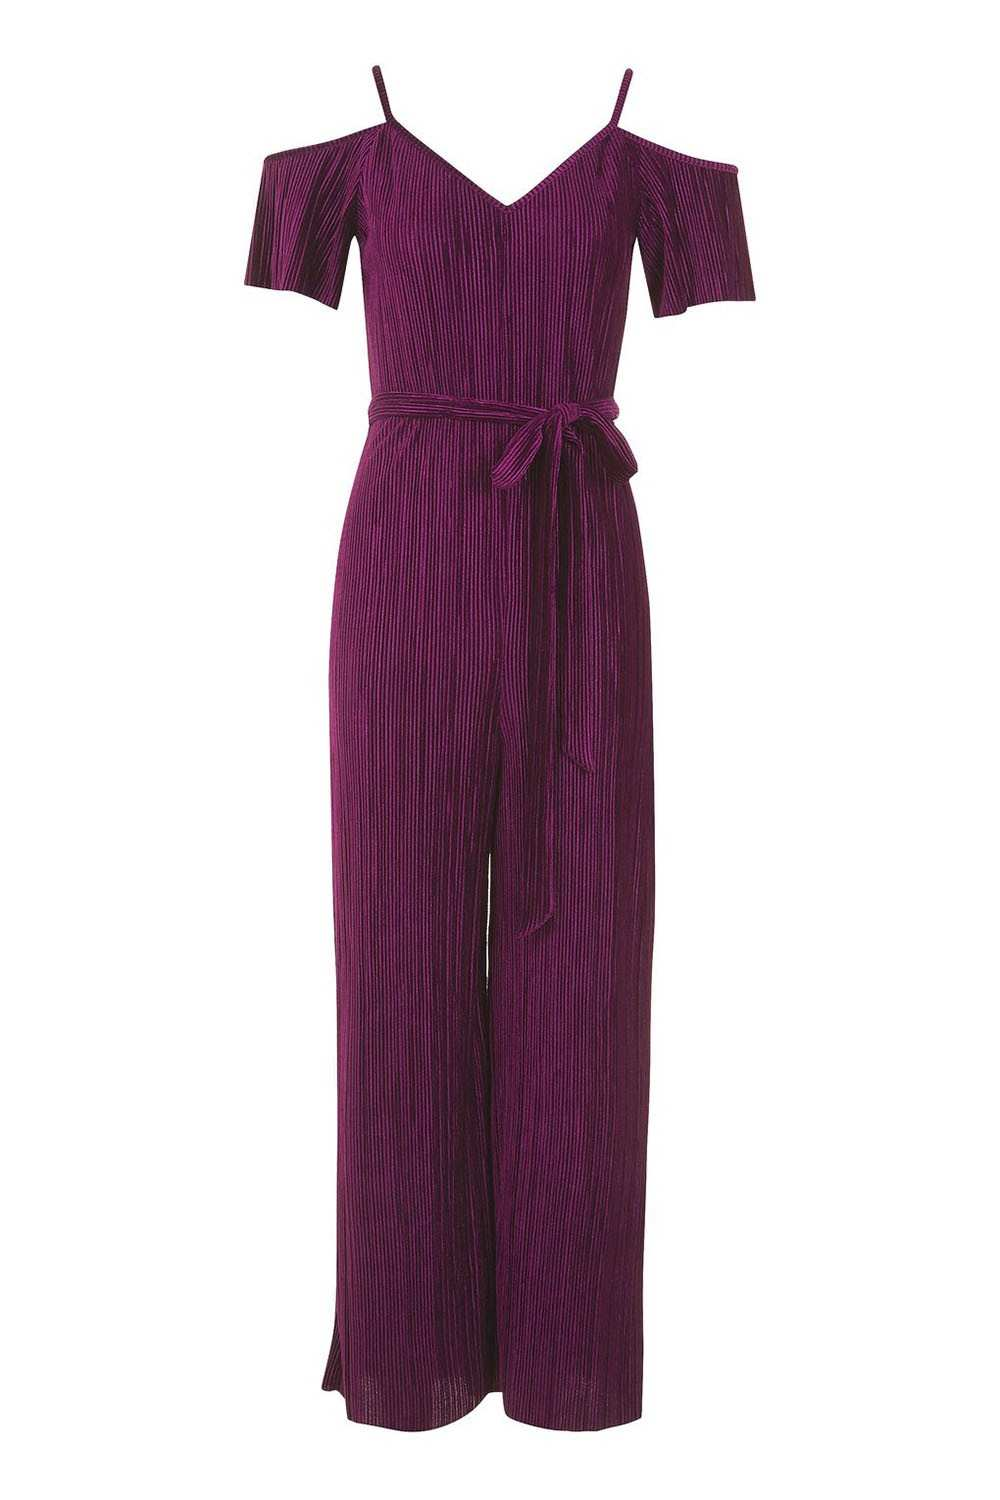 dresses for a wedding guest in october photo - 1